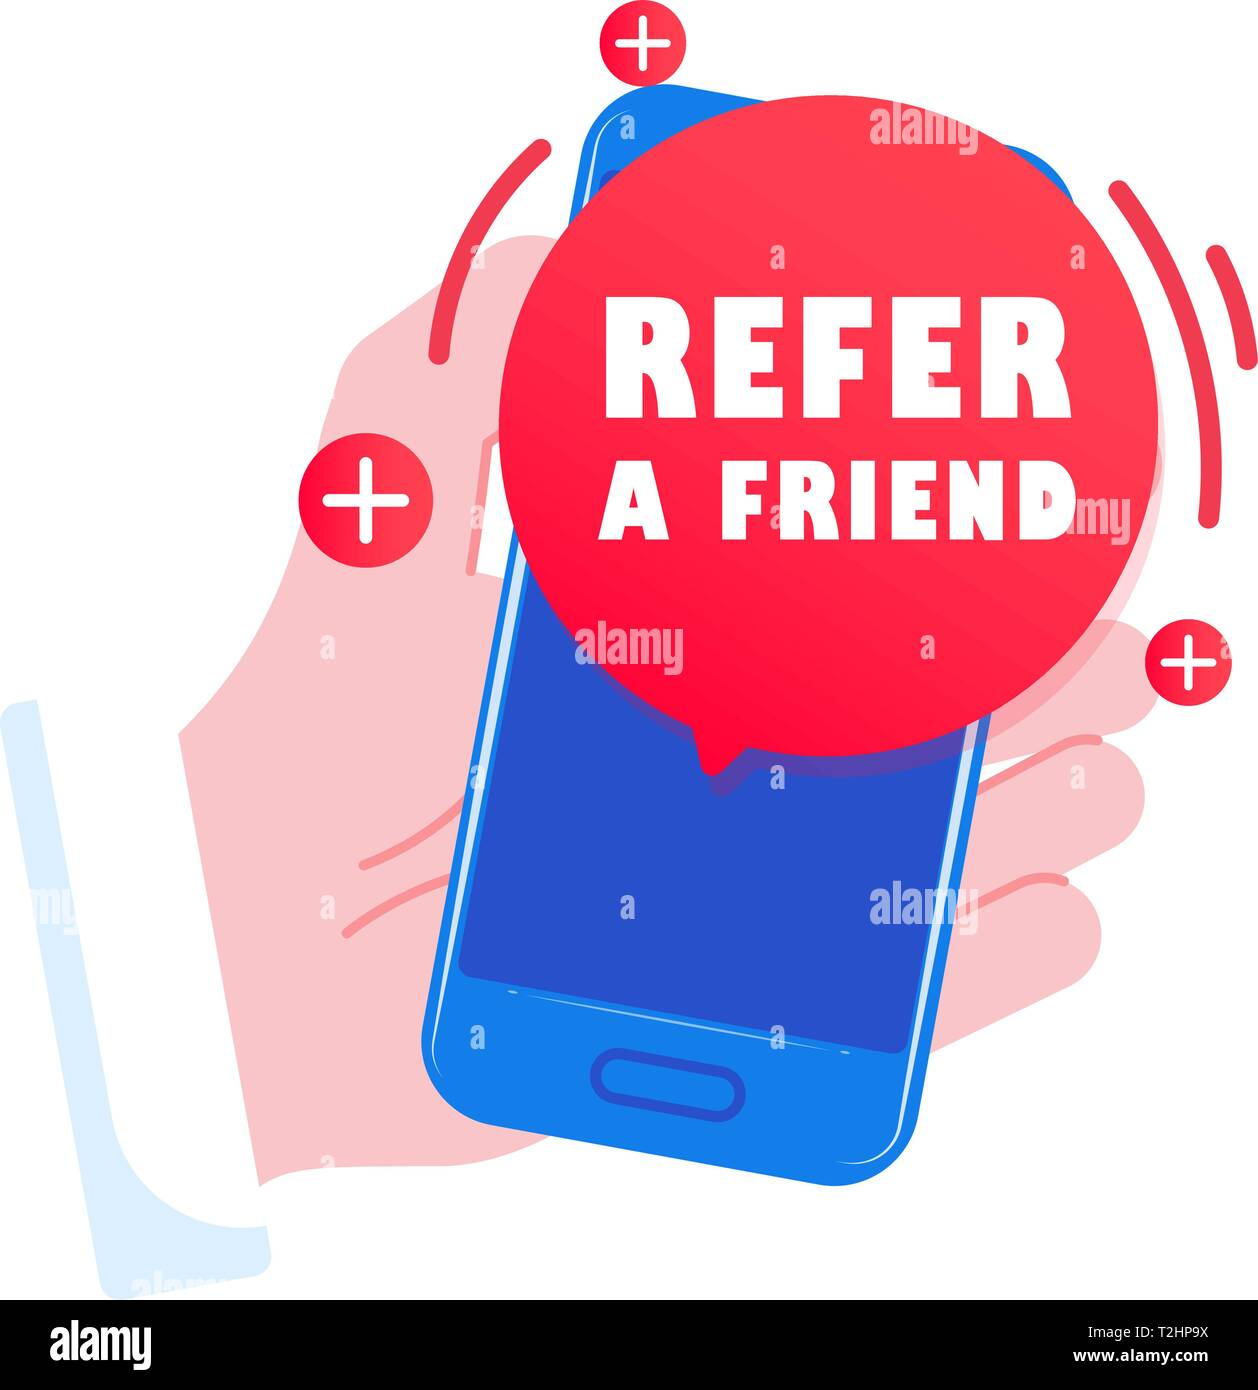 Smartphone in hand, message on the screen Refer a friend - Stock Image